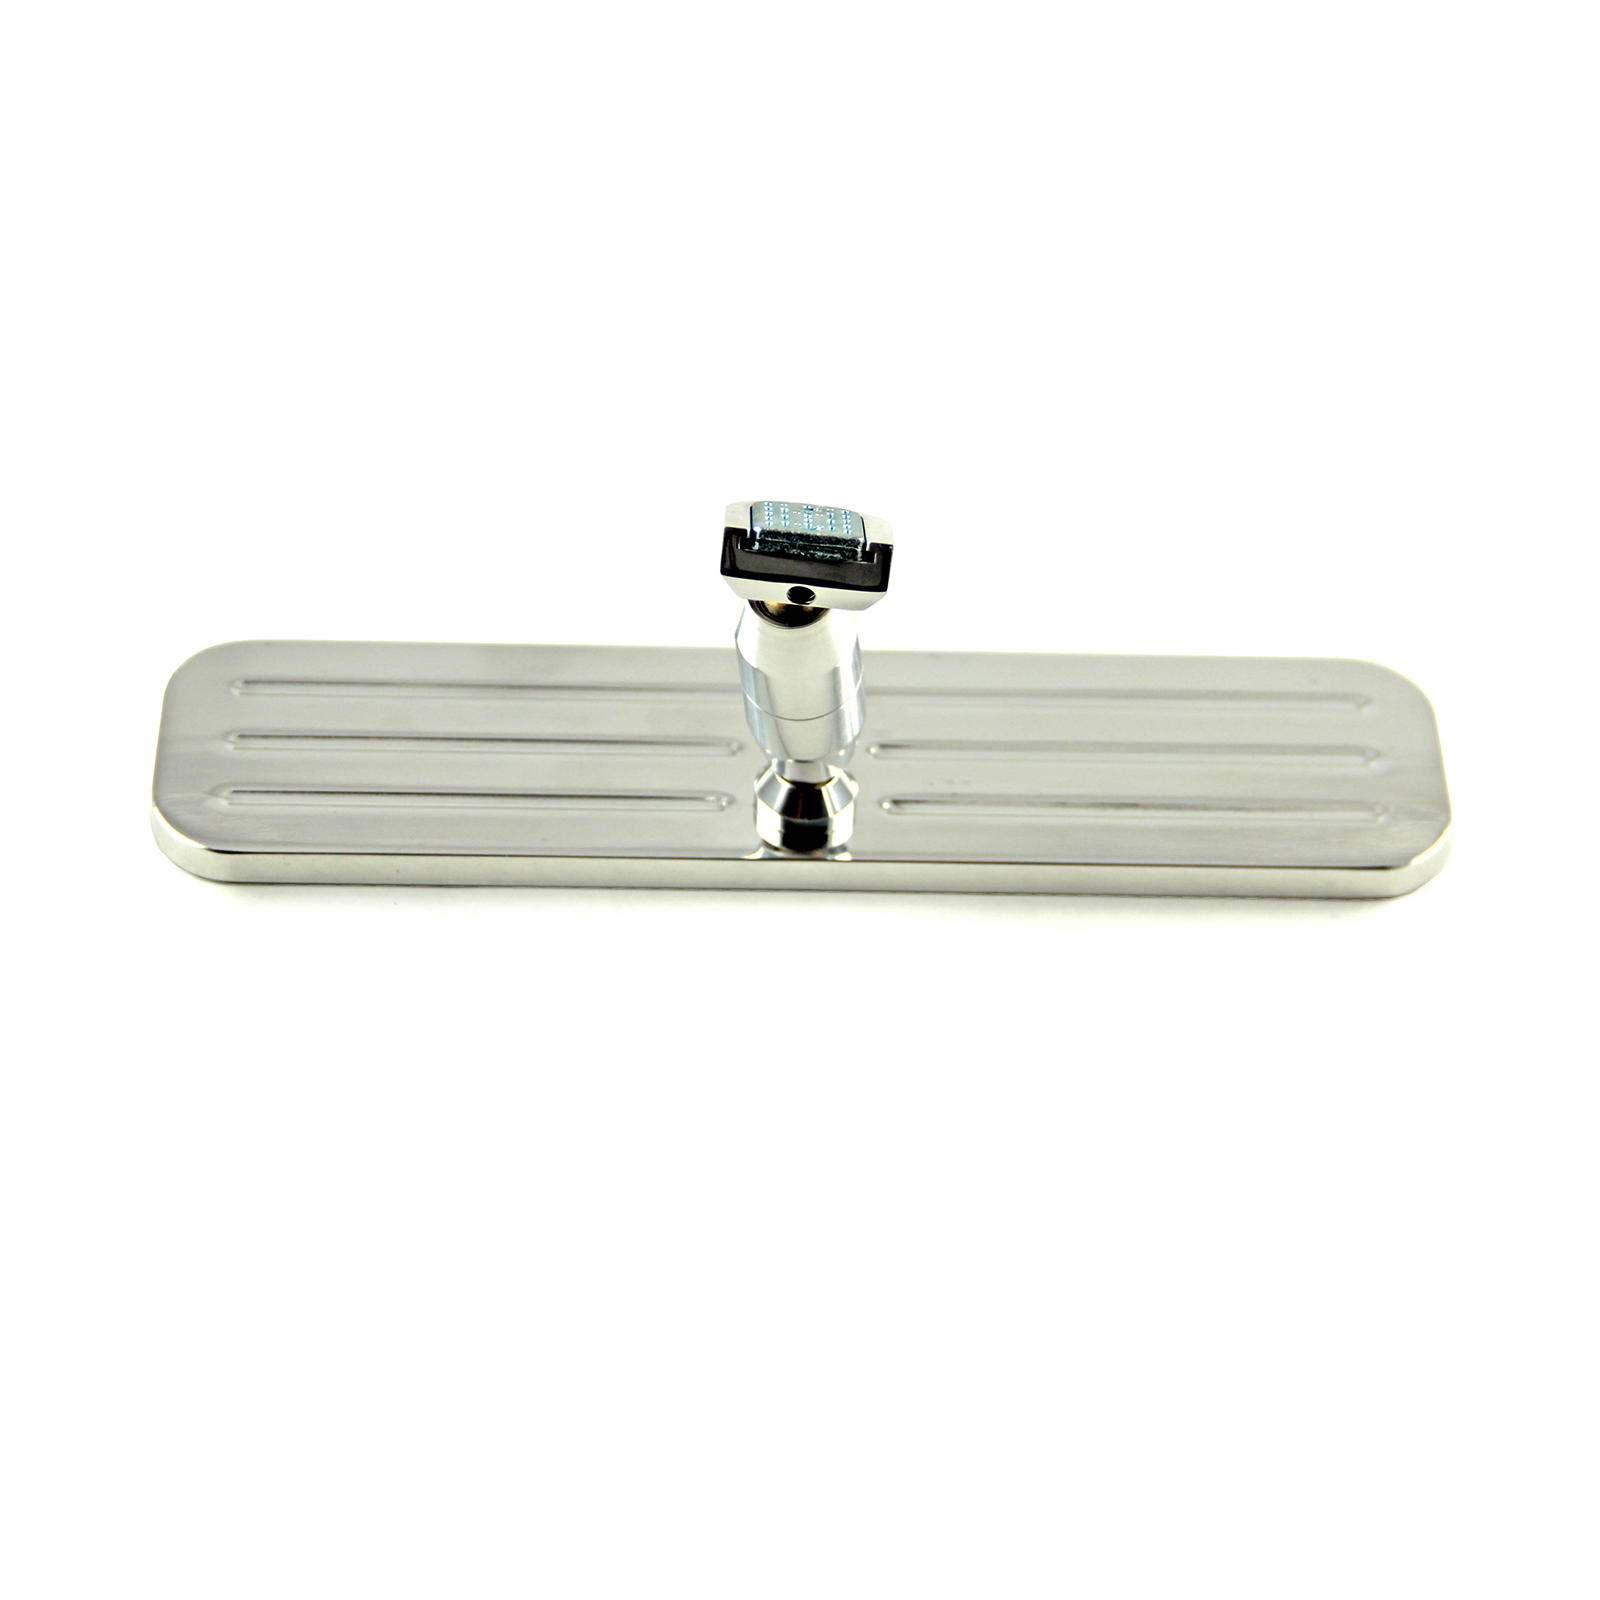 "Ball Milled Billet Aluminum 9 1/4"" Rear View Mirror"